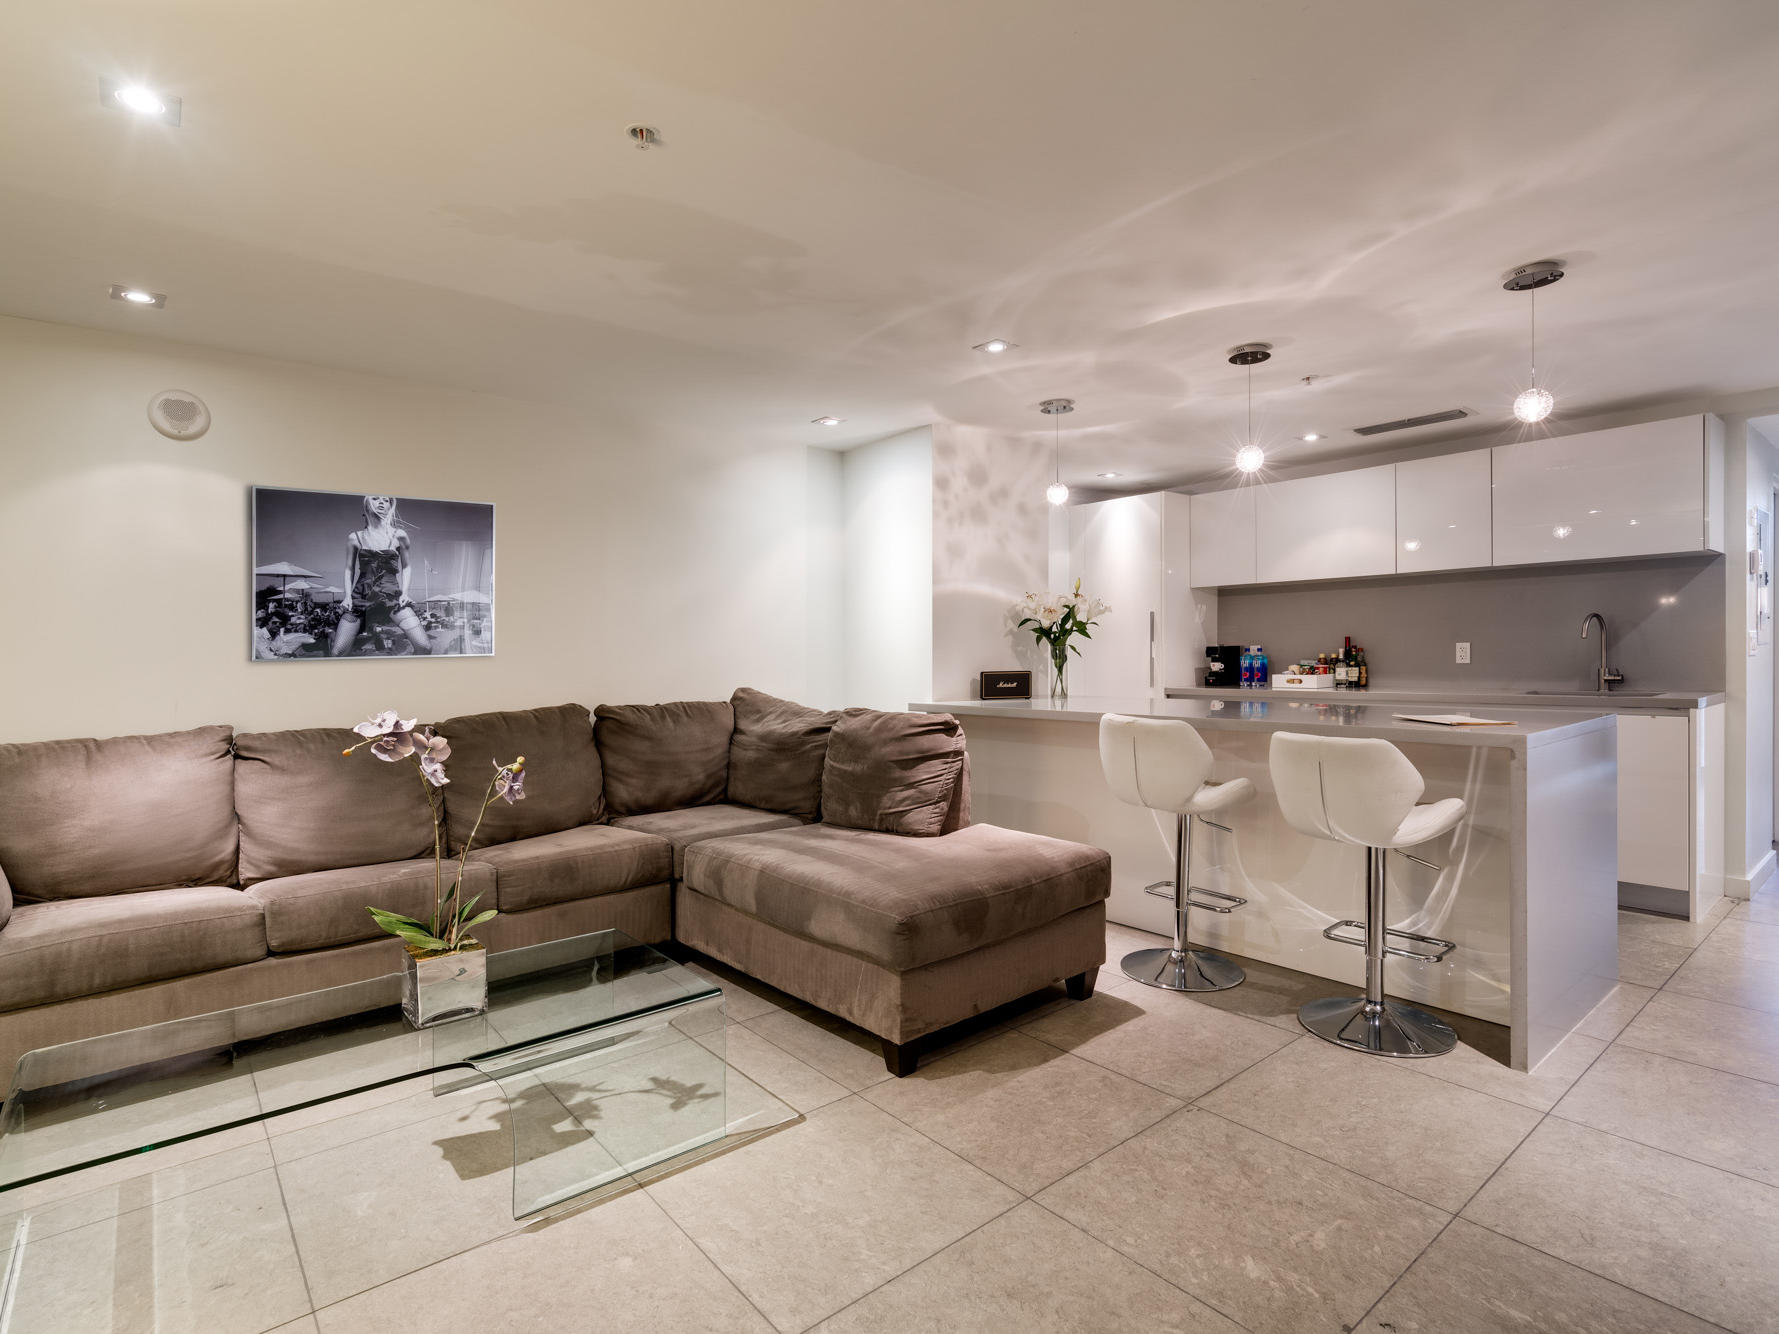 living room with grey sectional, glass coffee table and white kitchen